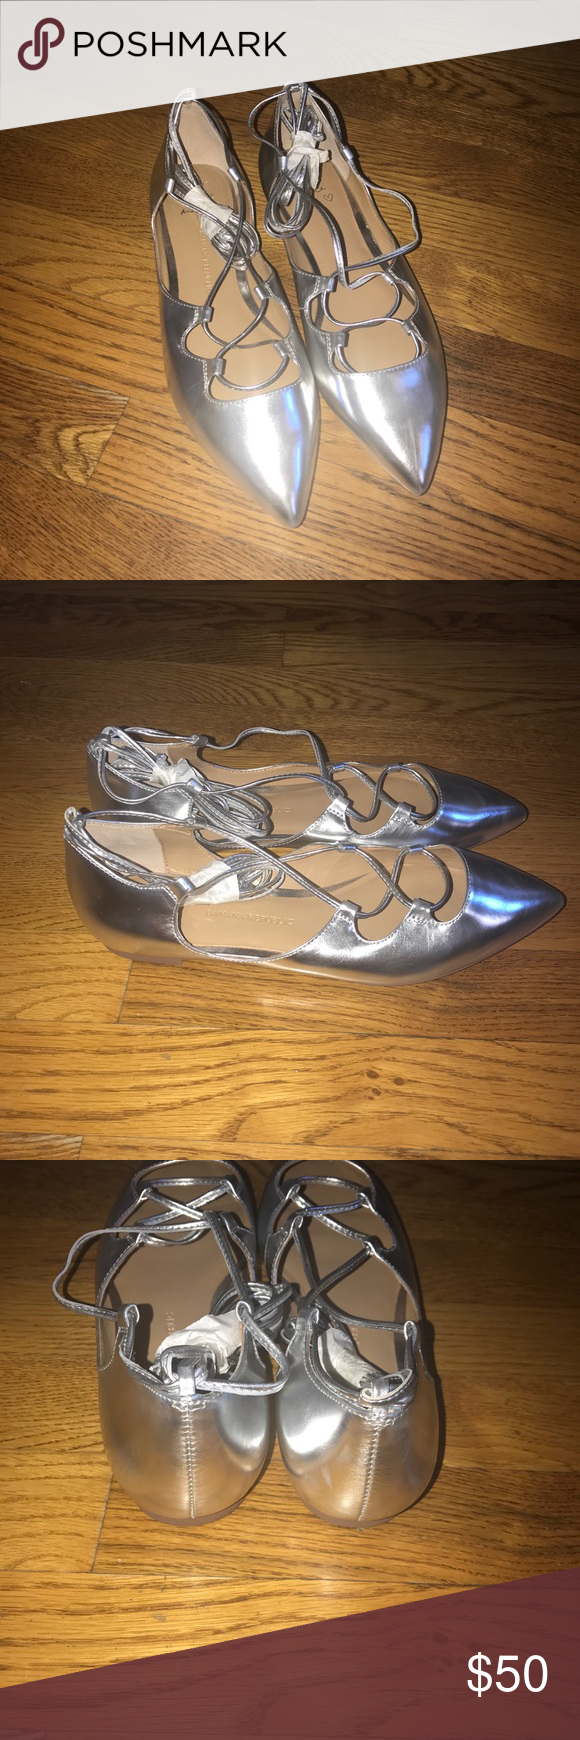 effe75ea32f Banana republic silver ankle strap ballet flats Perfect for the holidays! Banana  republic silver pointy